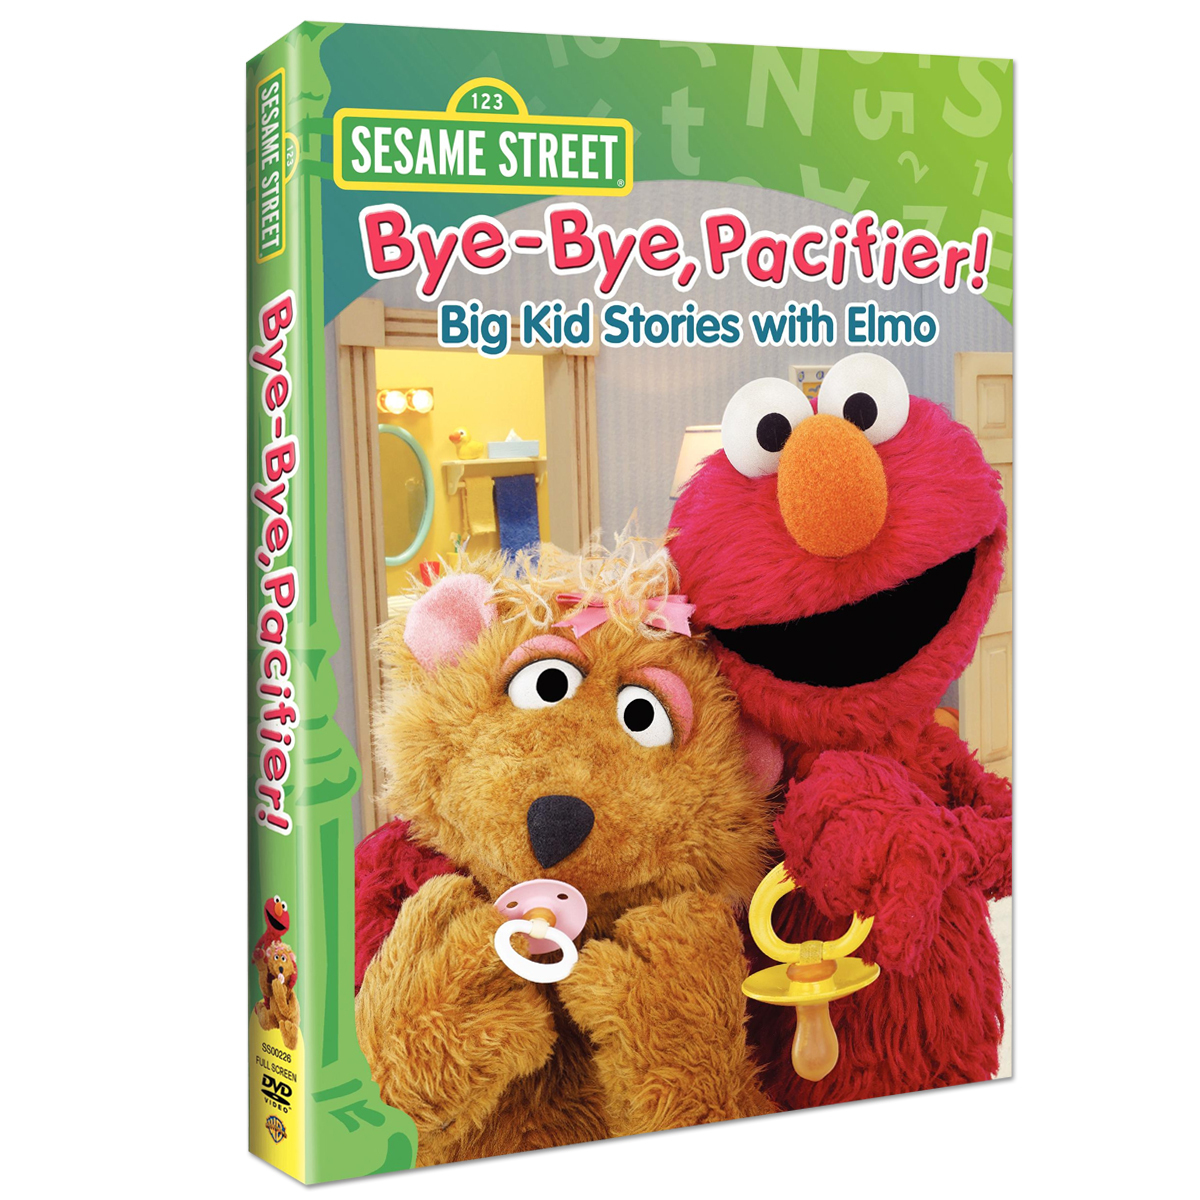 Bye-Bye Pacifier! Big Kid Stories DVD